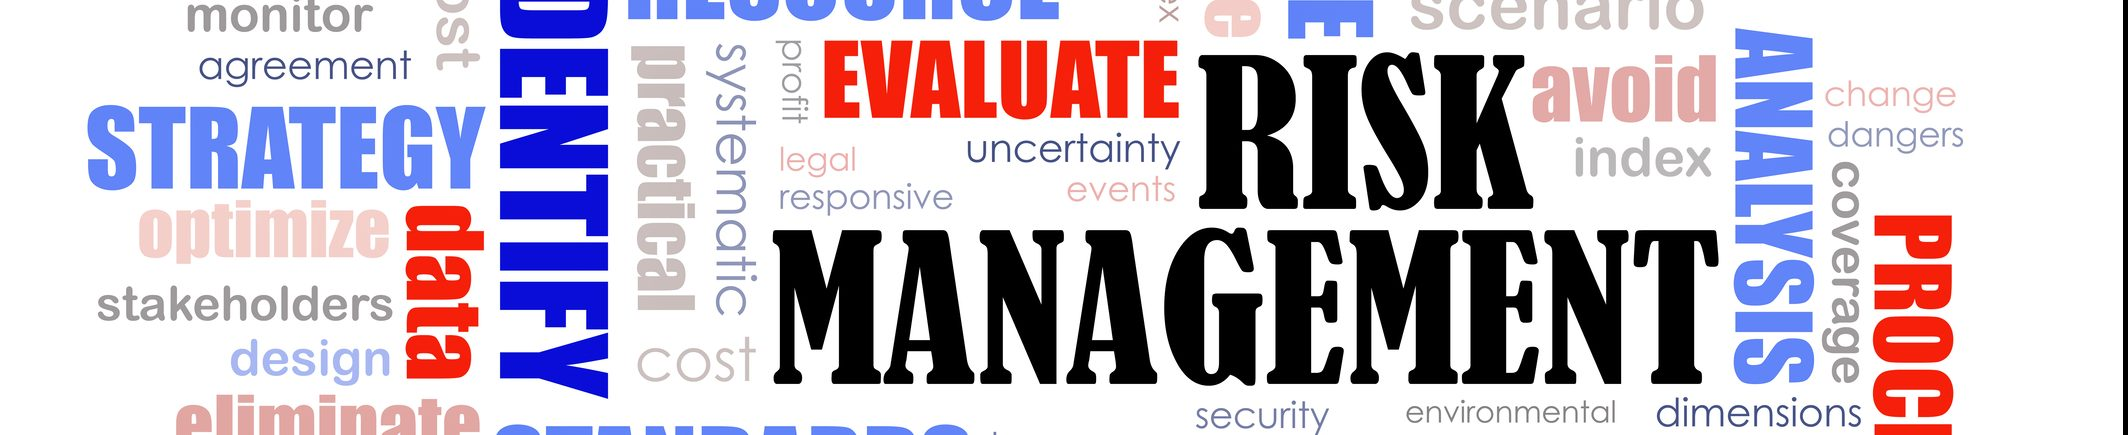 Risk assessment and management training